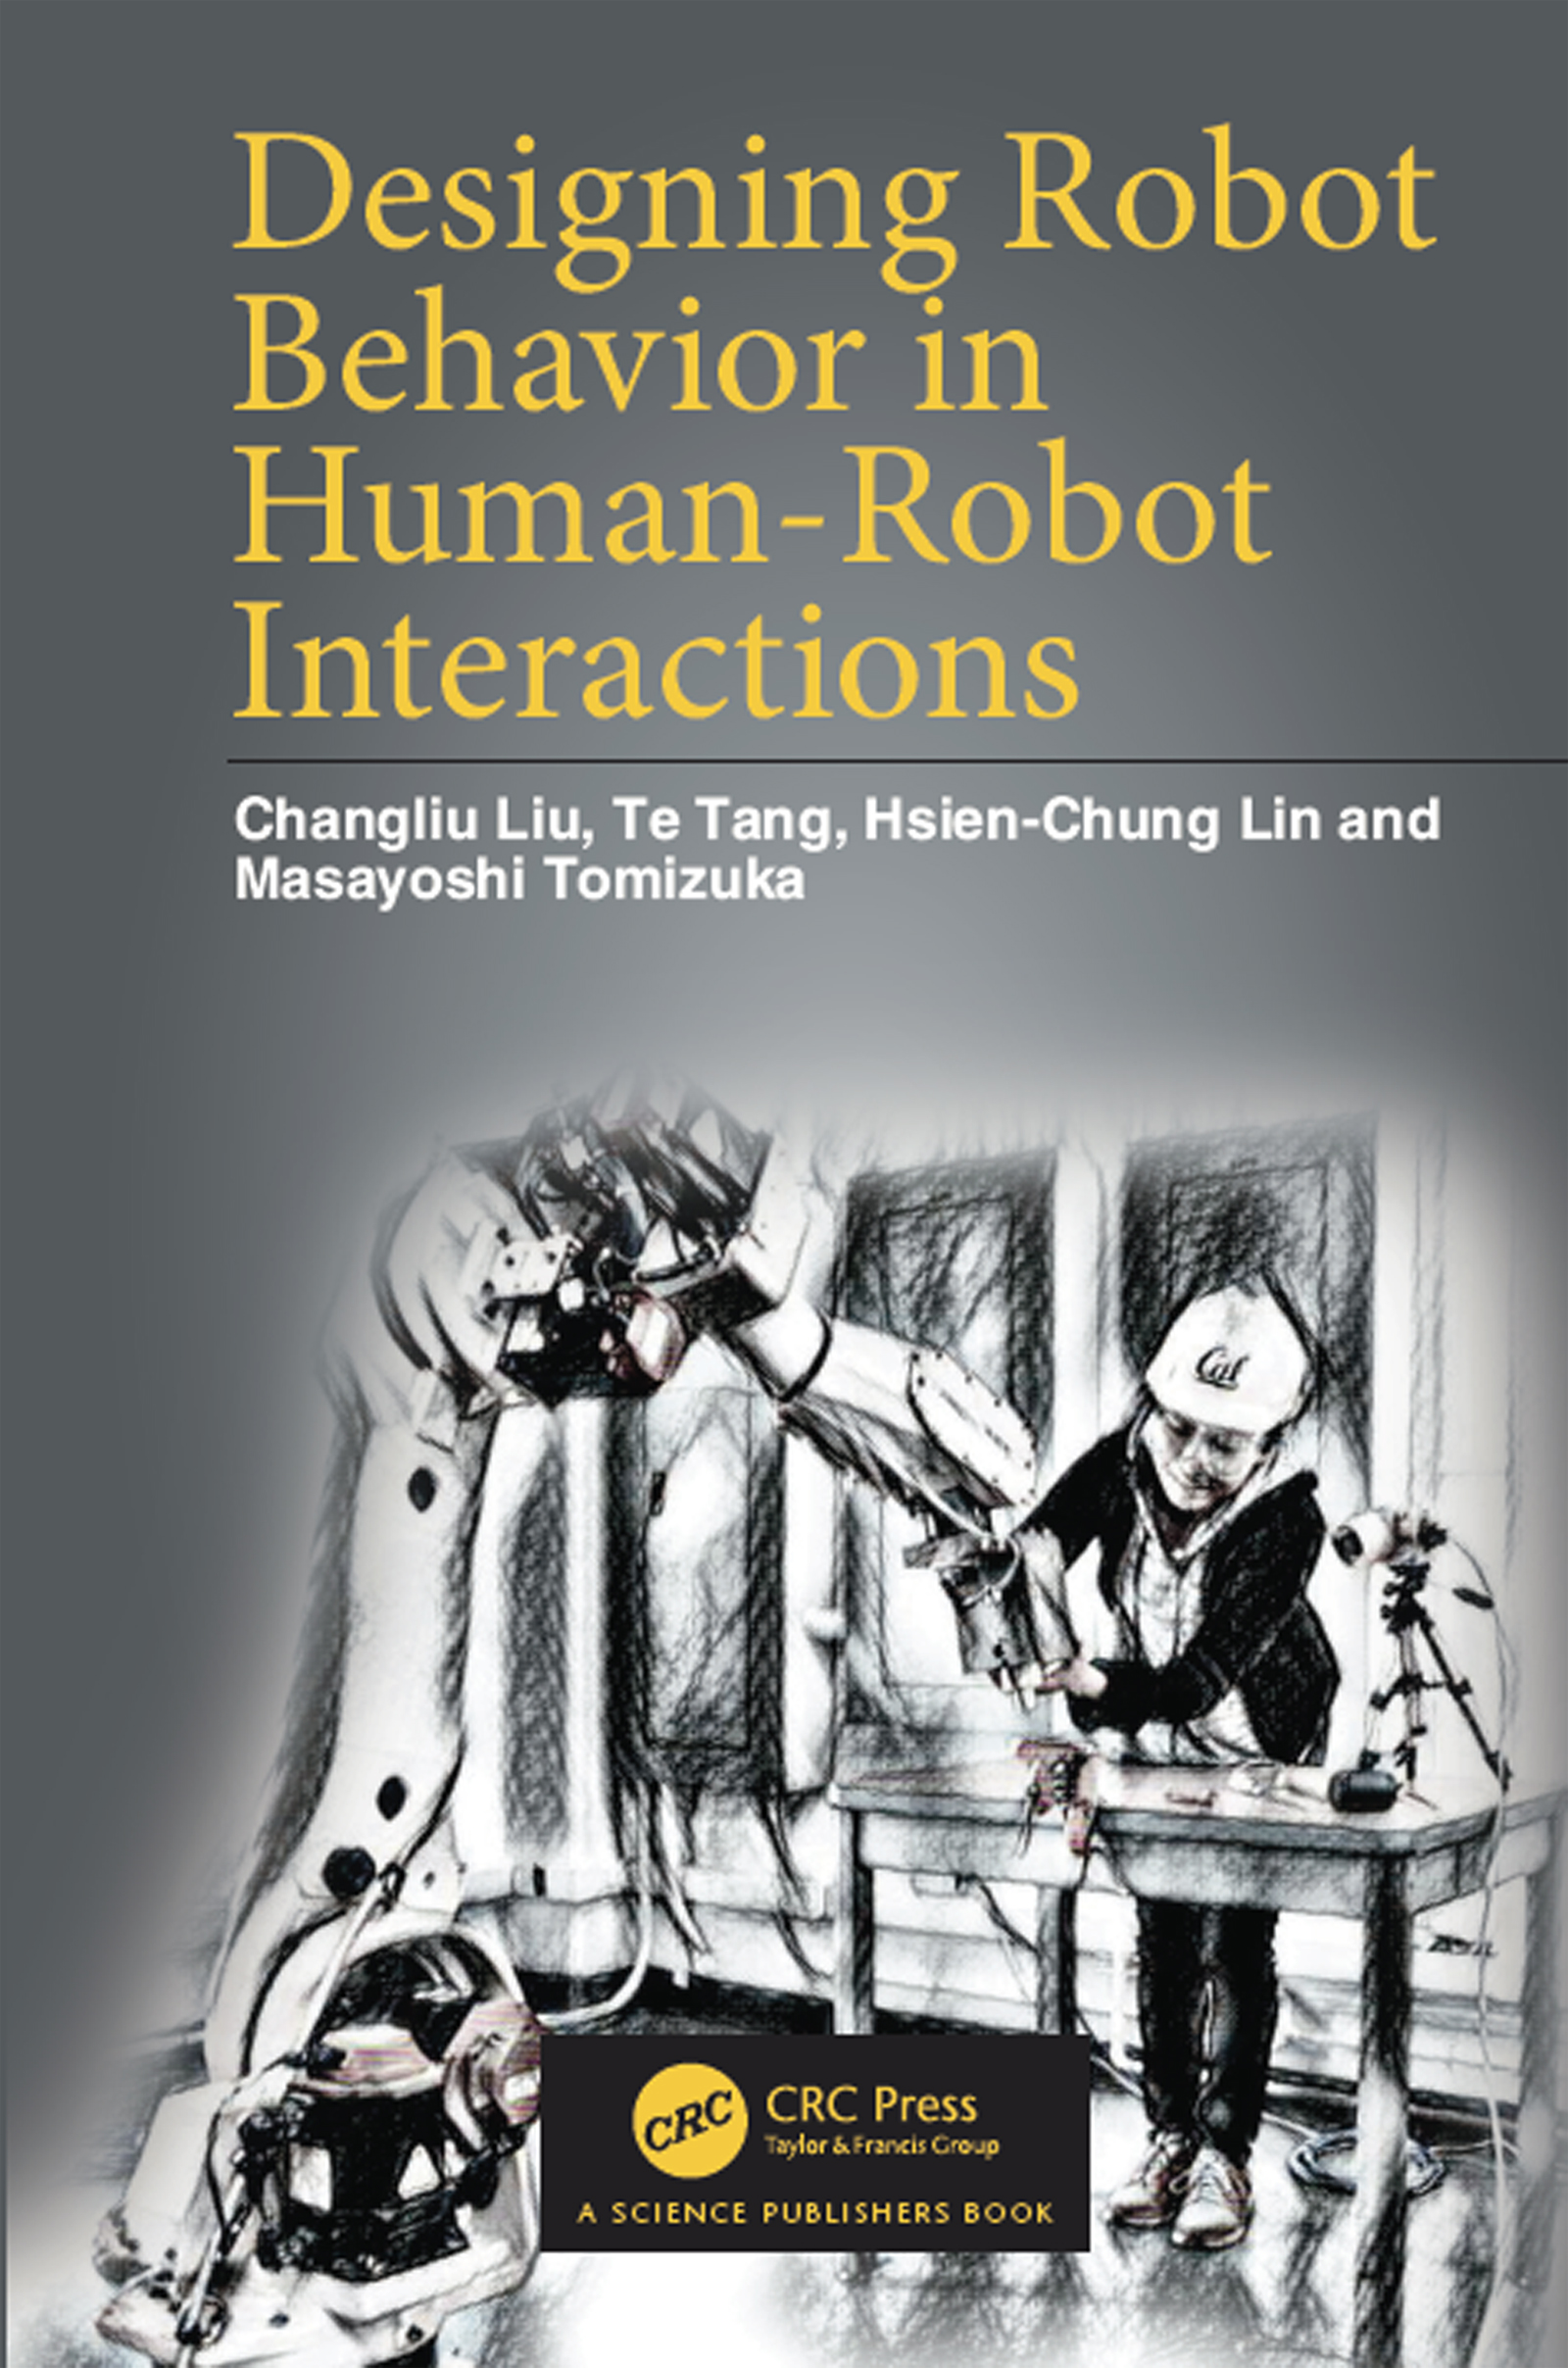 Designing Robot Behavior in Human-Robot Interactions book cover